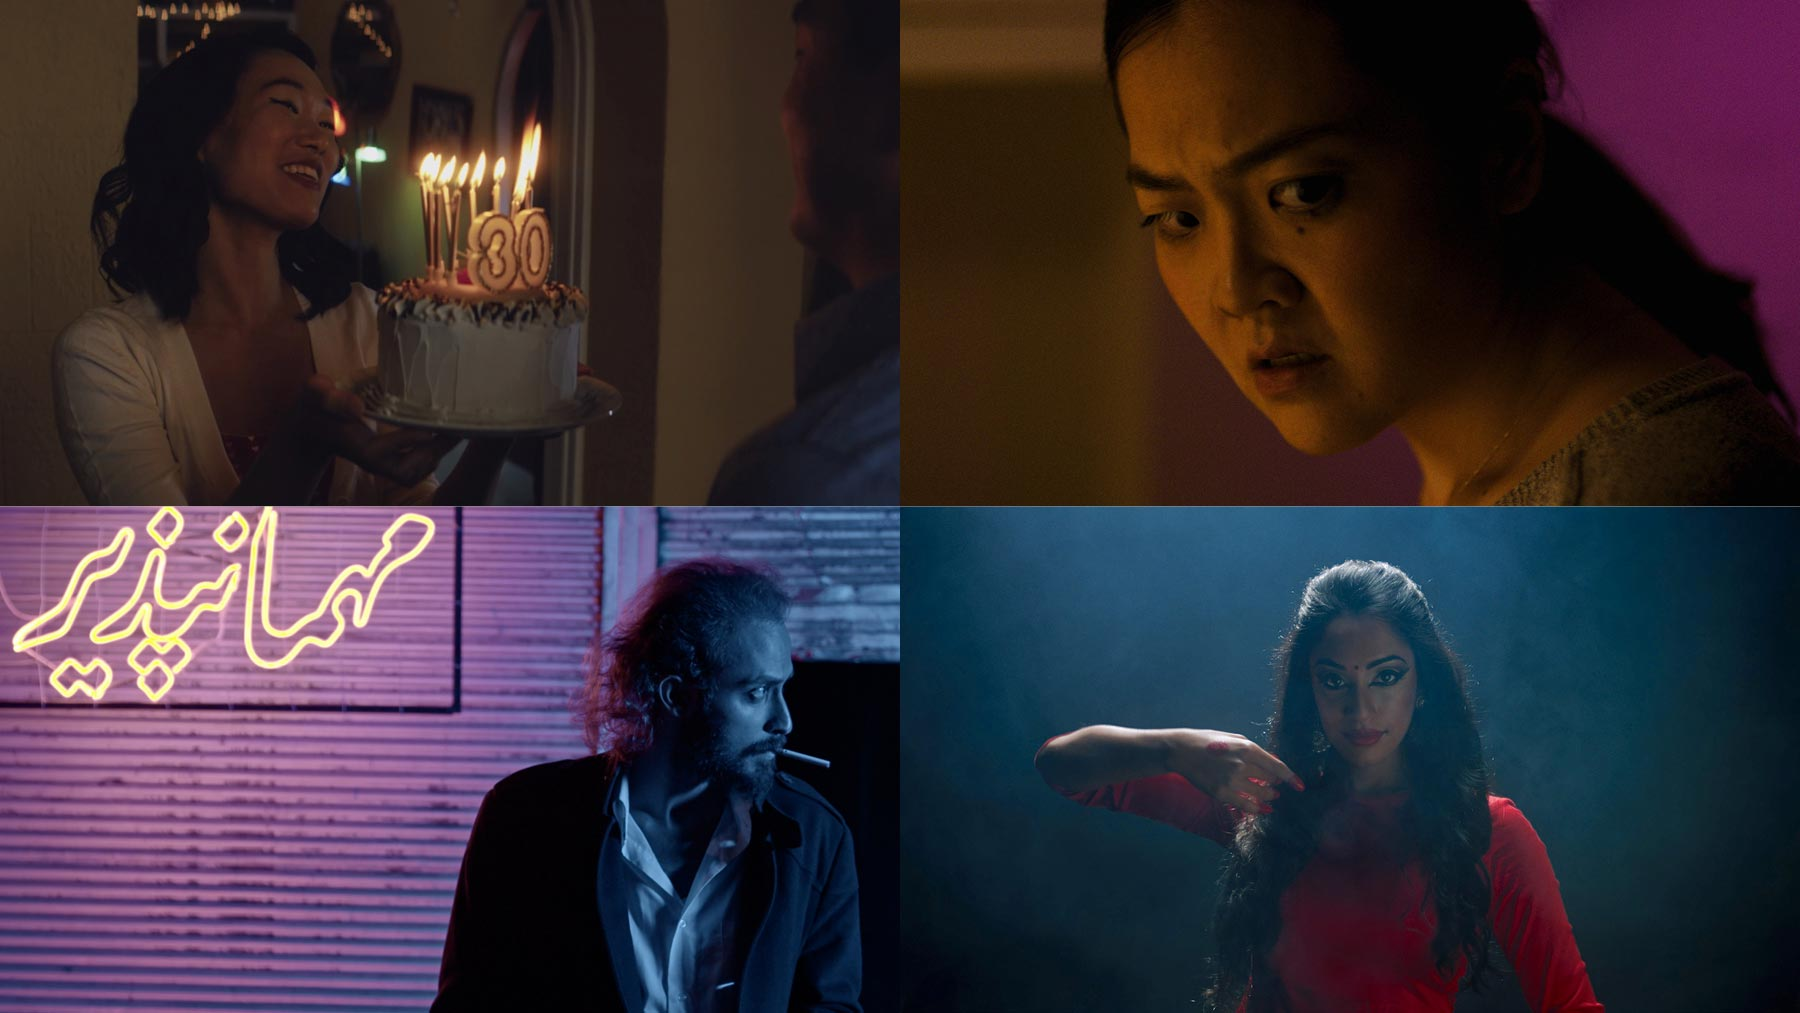 Film Stills from Make a Wish, The Mark, Blue Eyed, and Tina